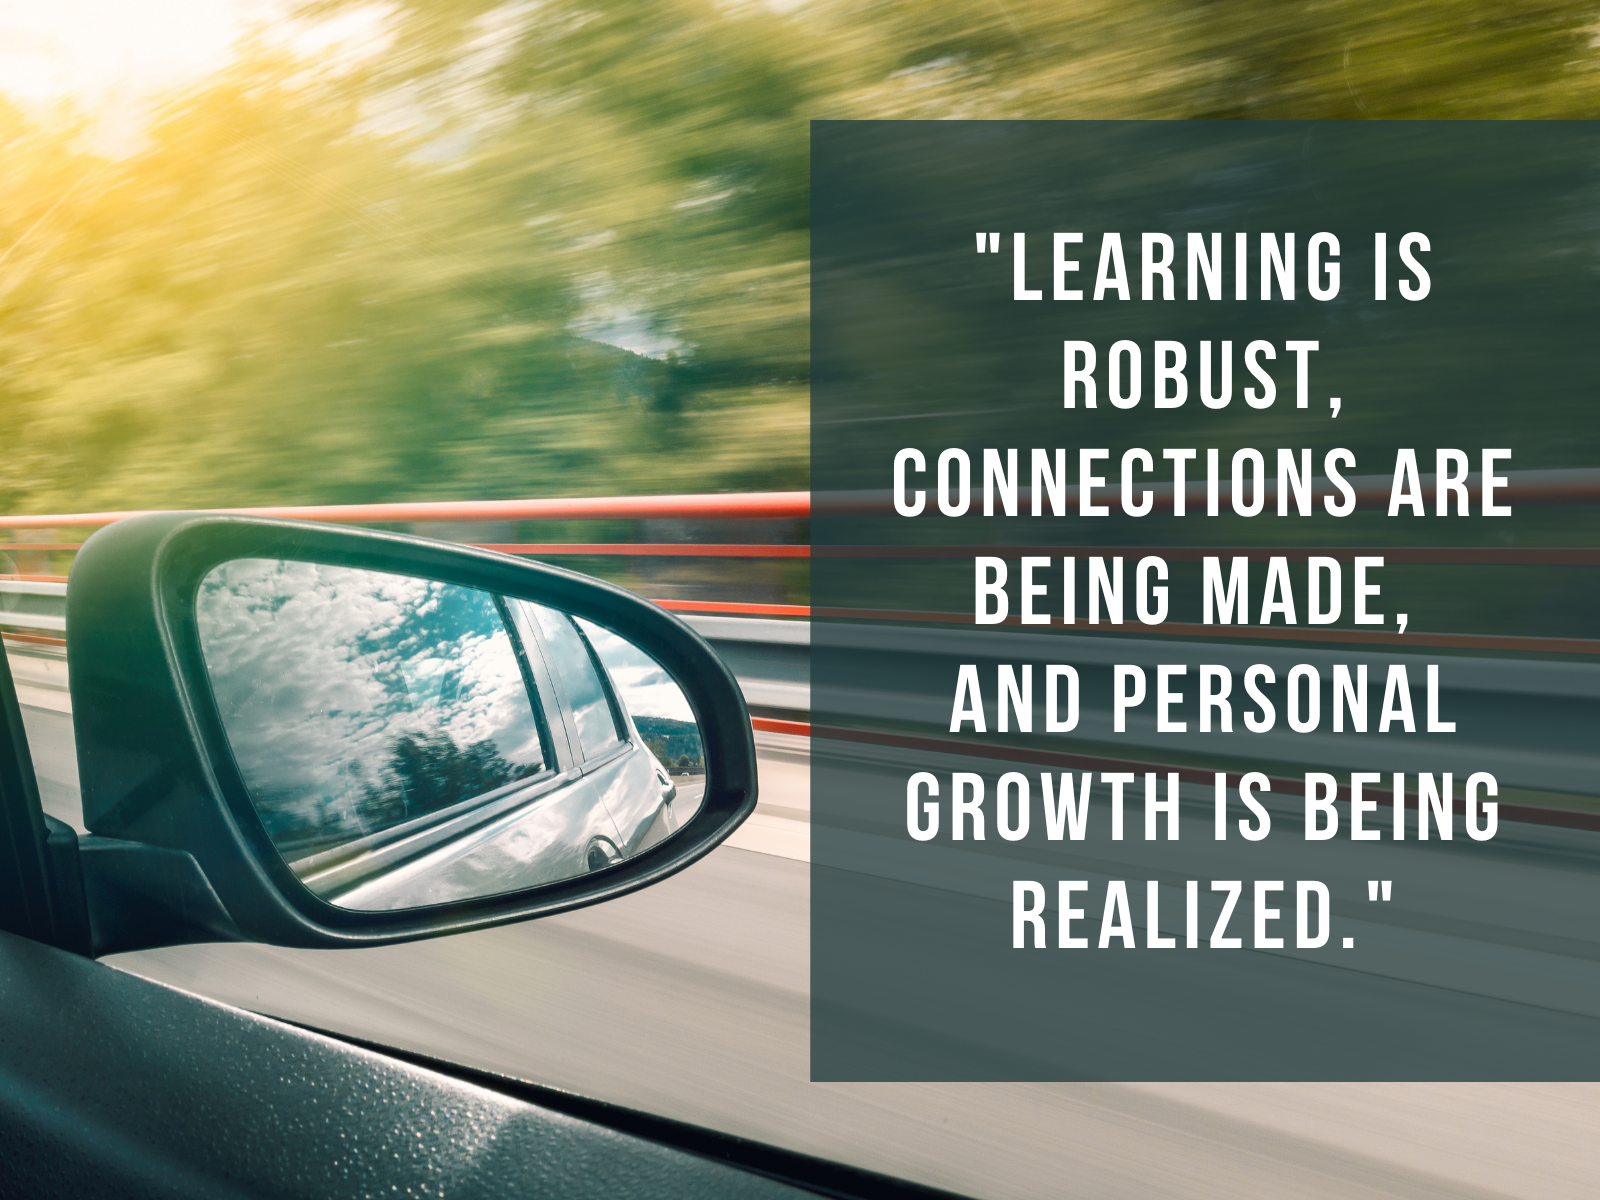 looking out the window of a car driving quickly, with overlaid quote from story